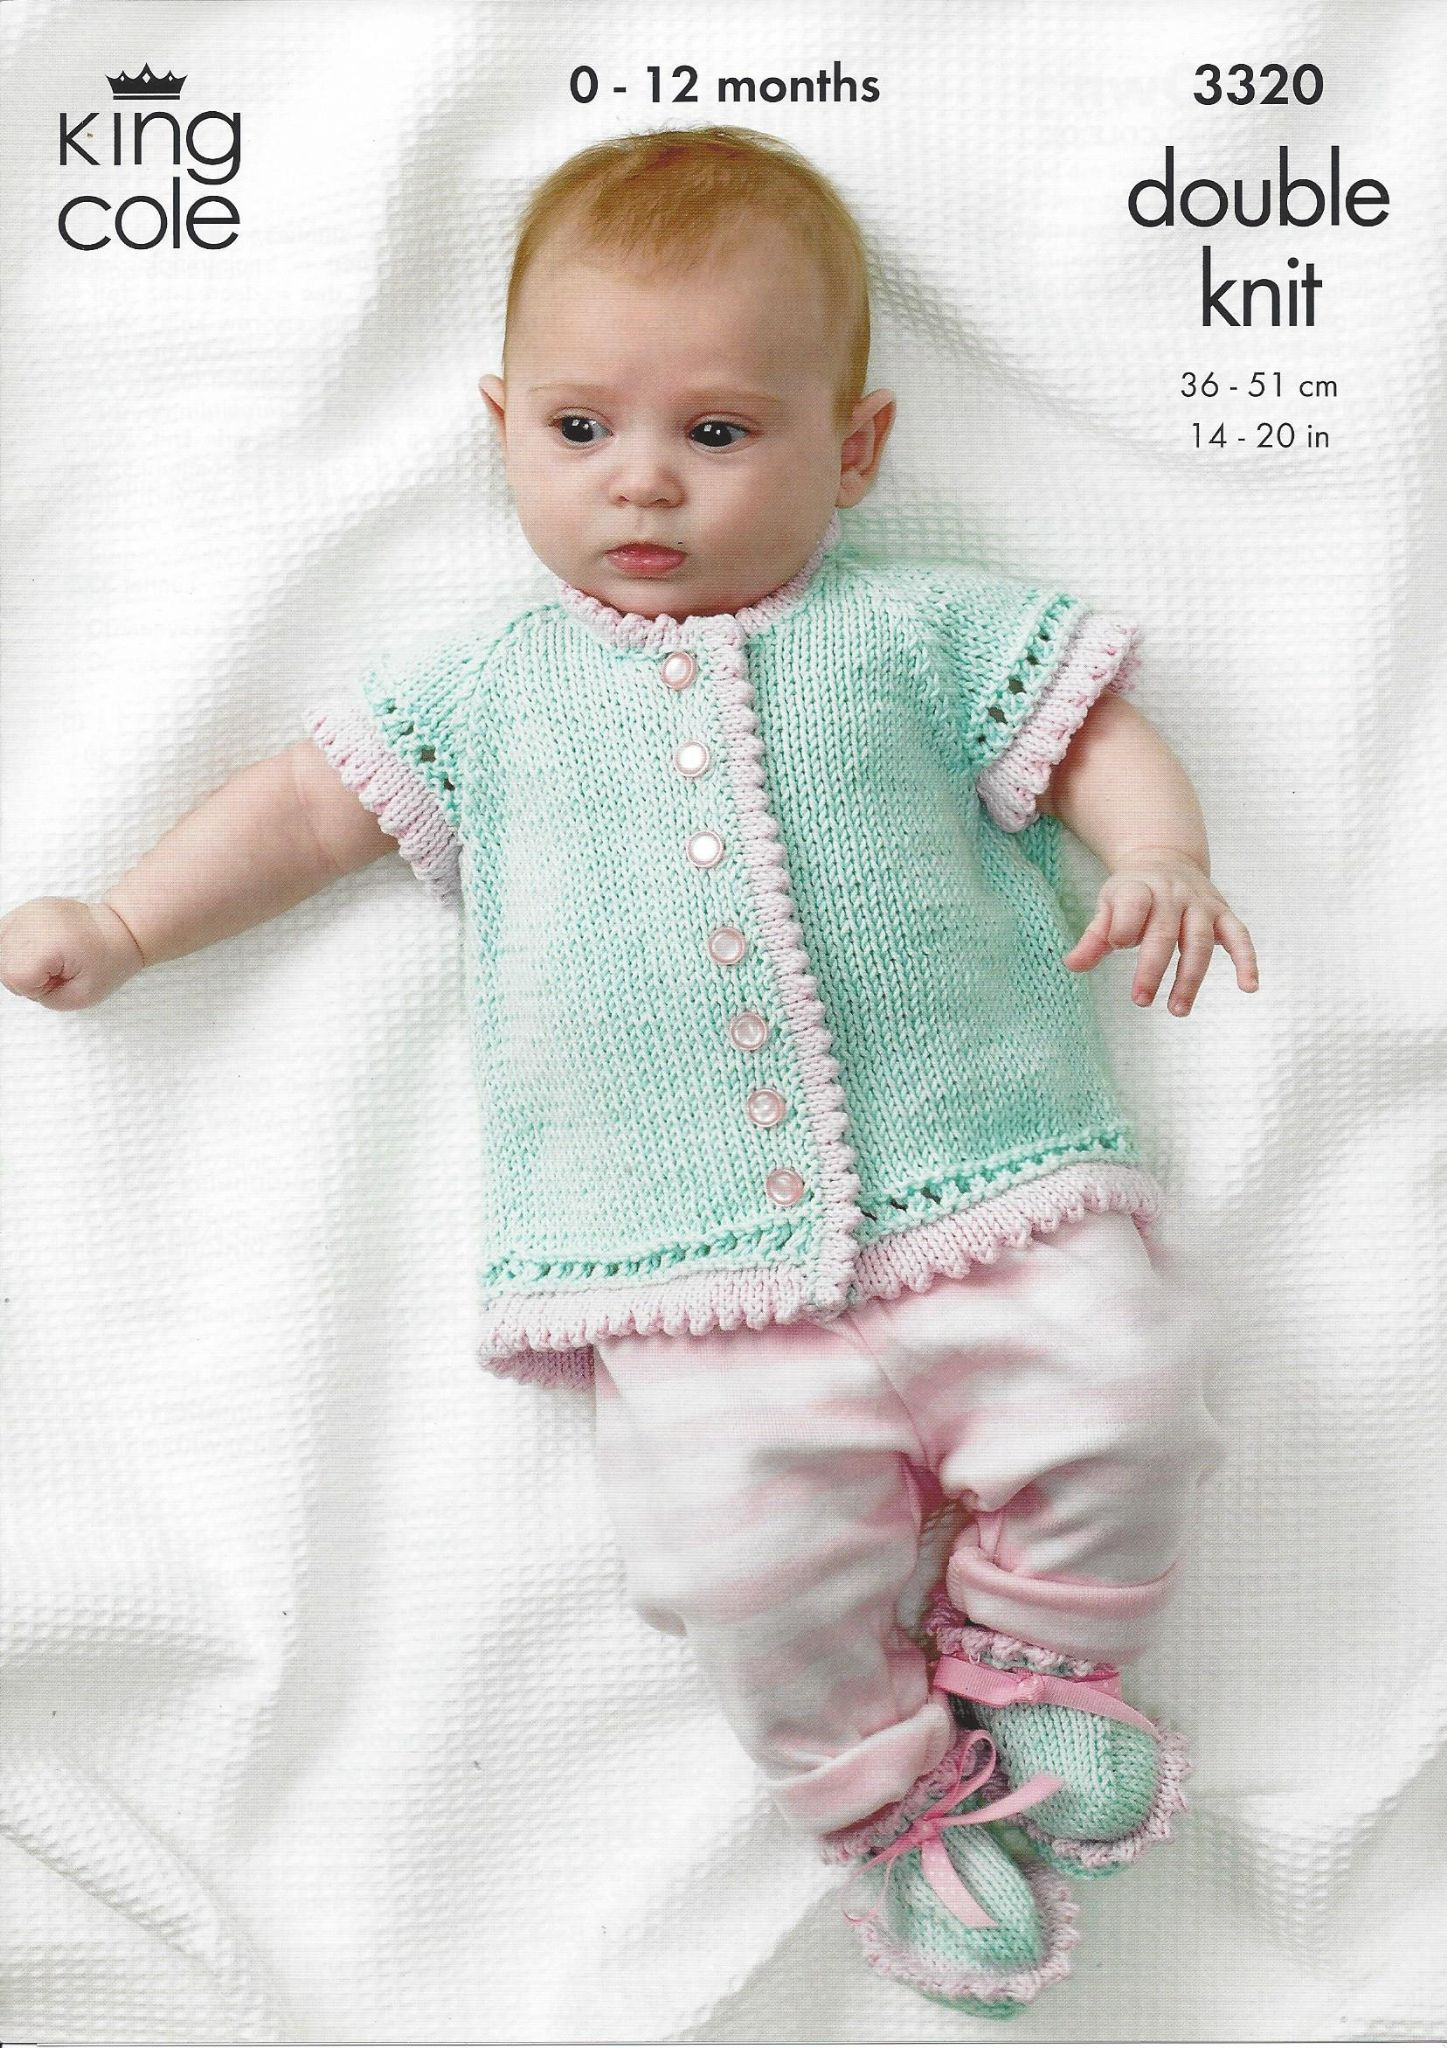 King Cole Baby DK Knitting Pattern - 3320 Round Neck Crossover ...